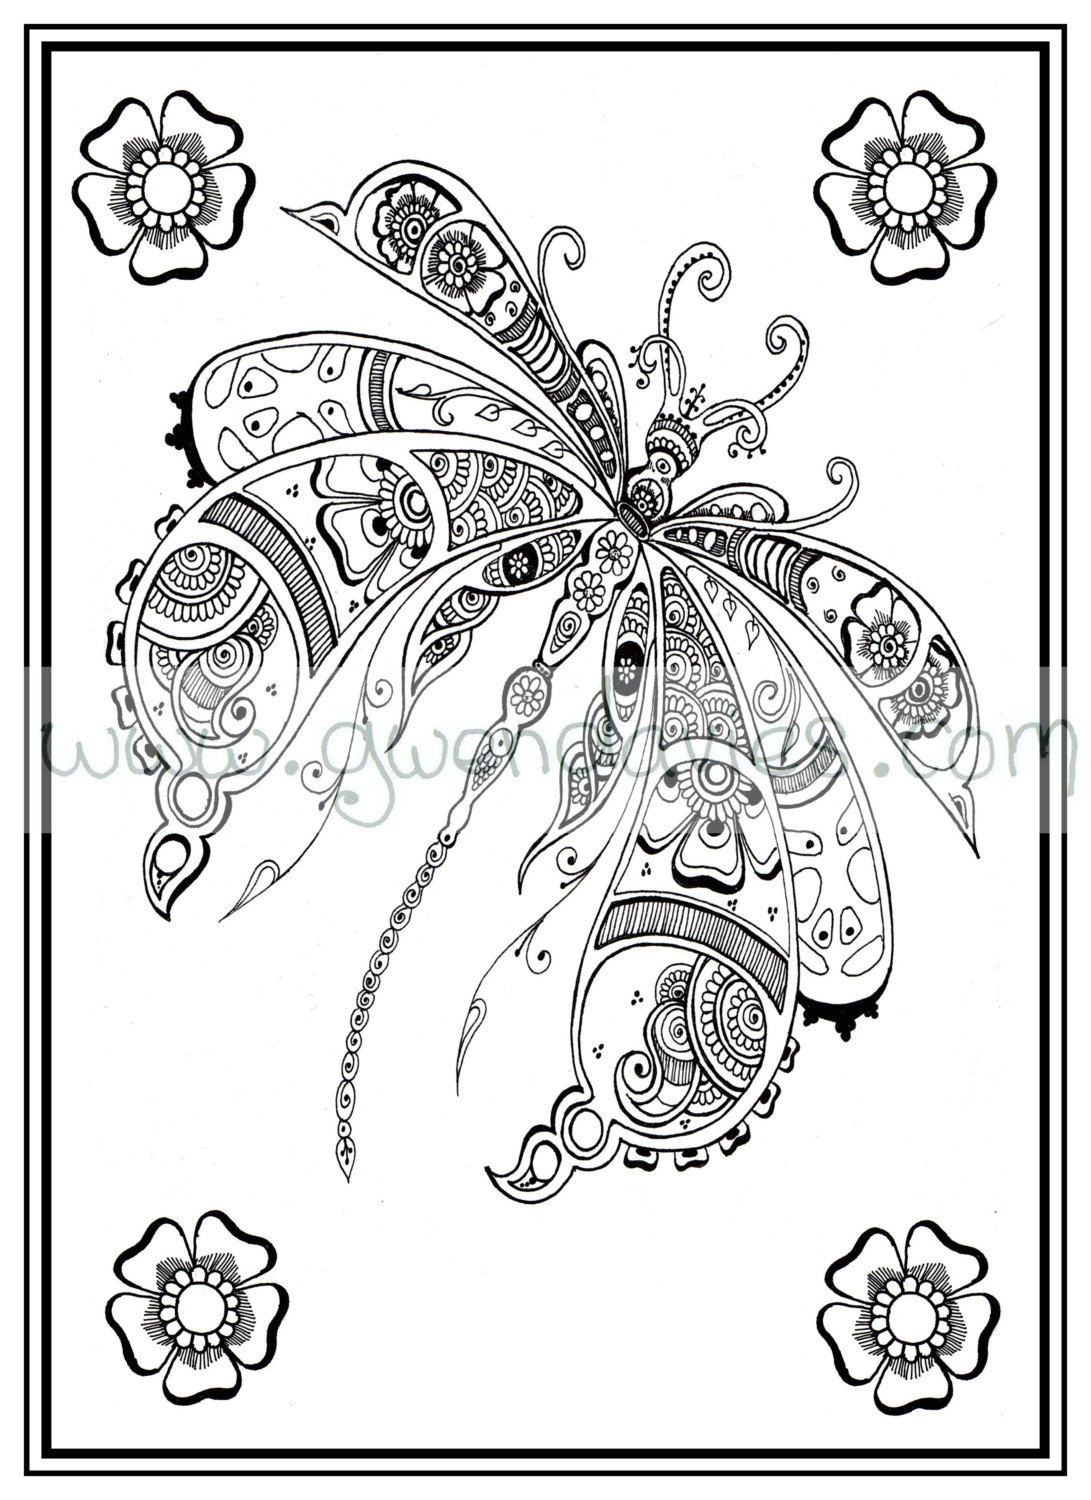 Adult Colouring In PDF Download Dragonfly Henna Zen